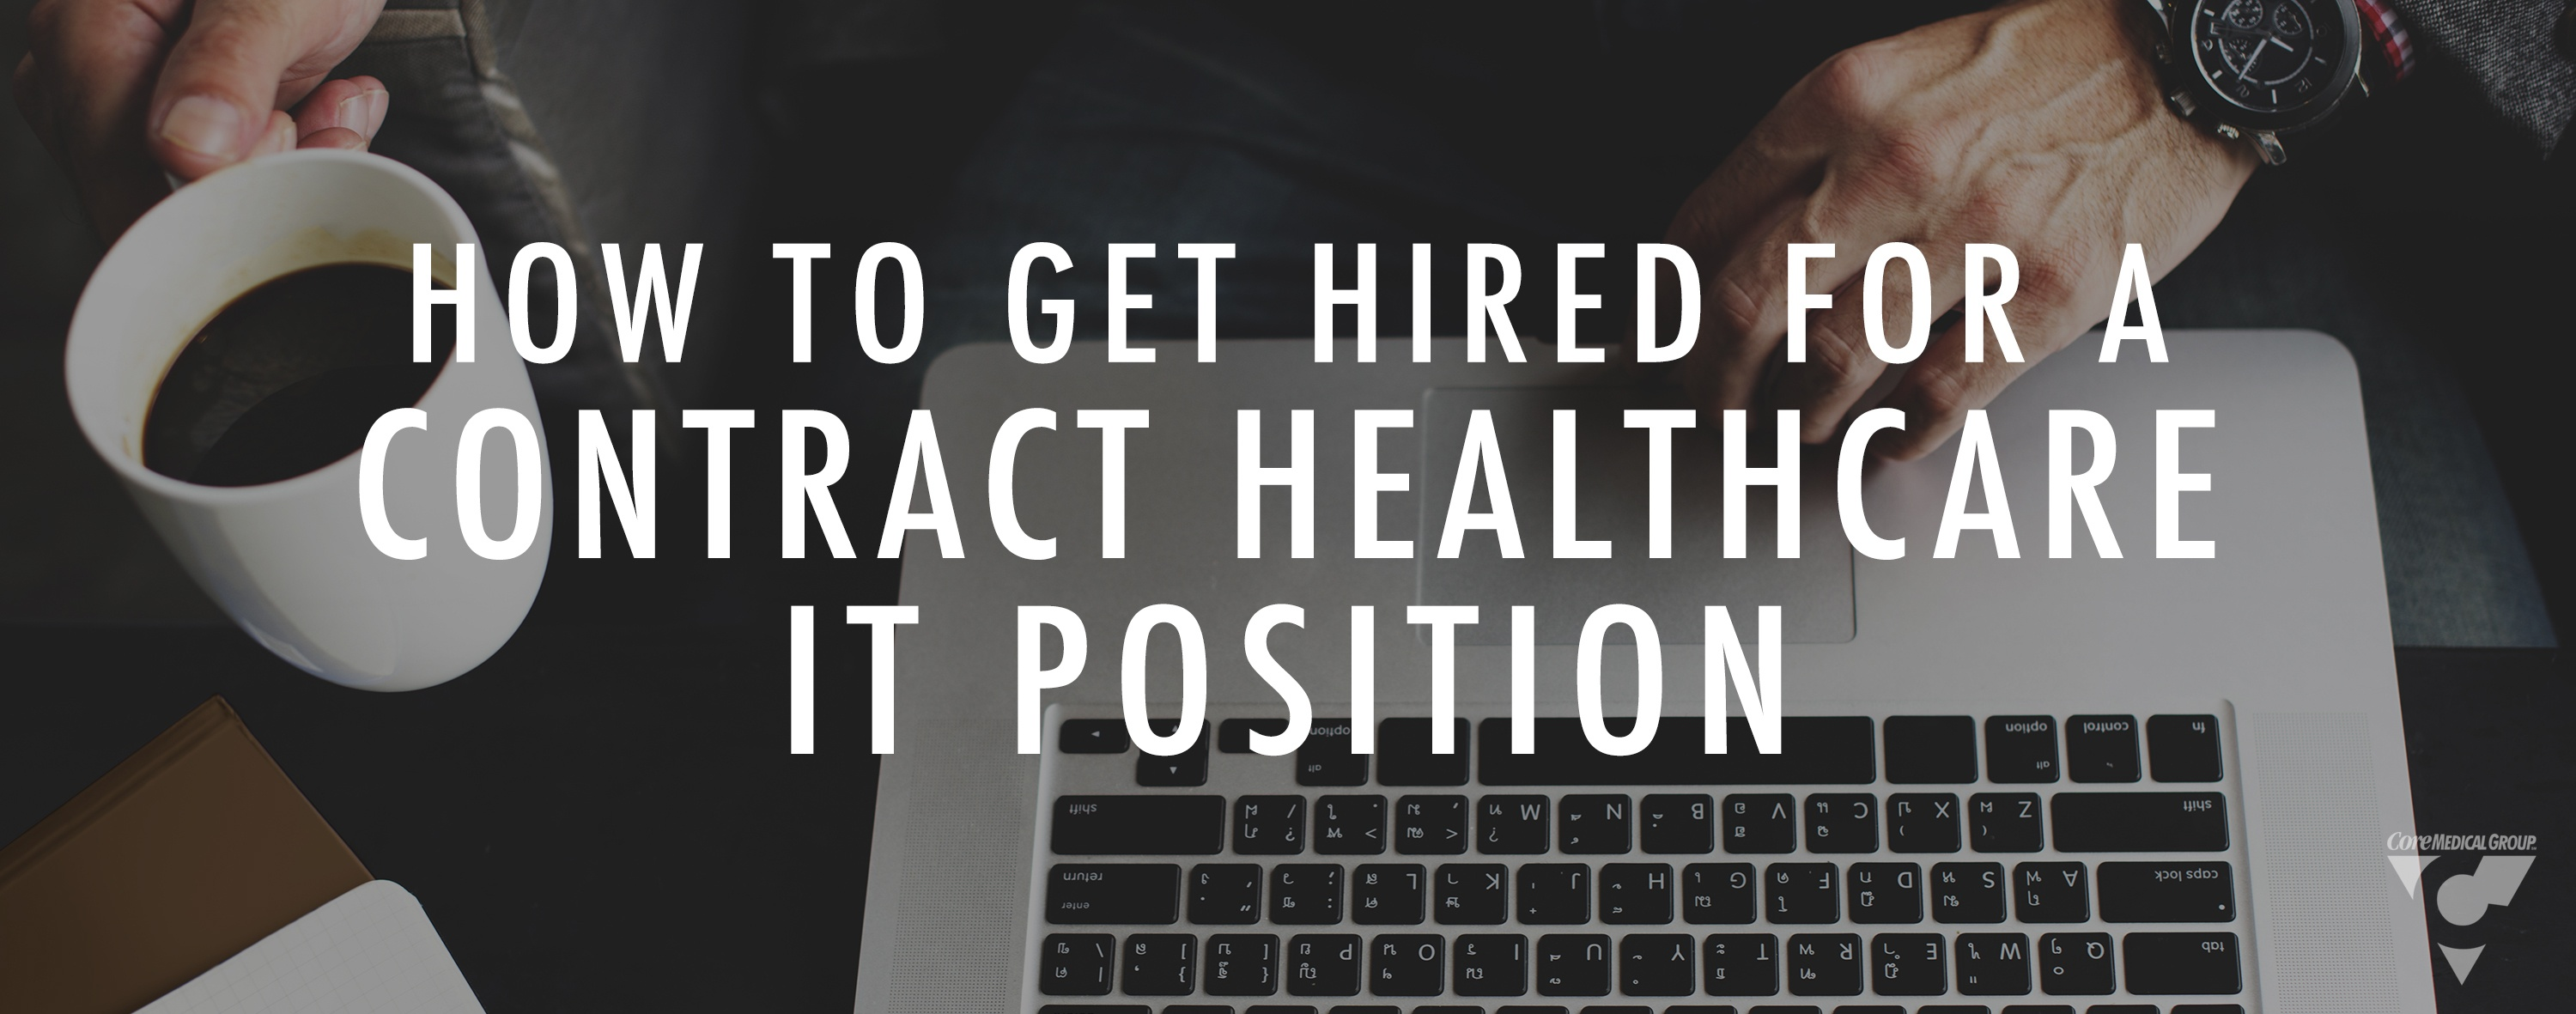 How to Get Hired for a Contract Healthcare IT Position